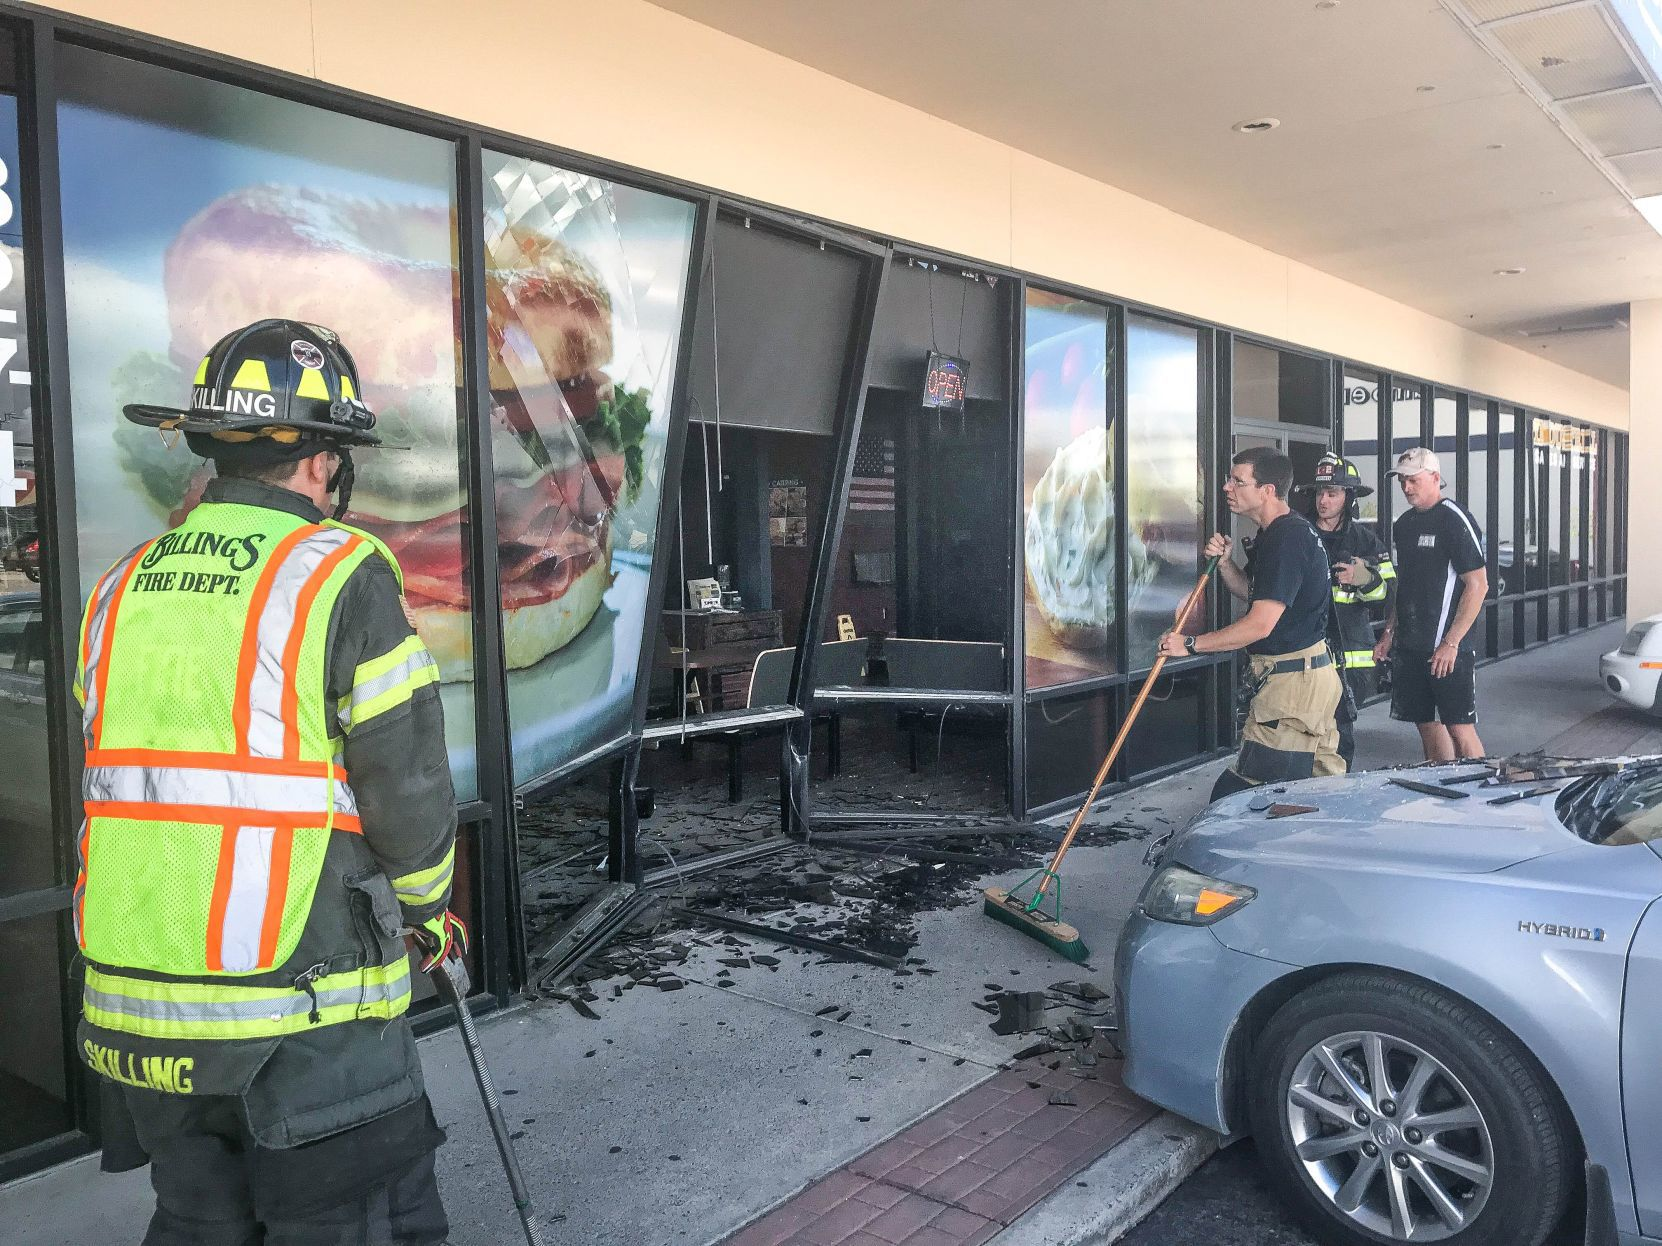 No serious injuries after 15-year-old driver crashes into Billings West End bagel shop | Billings Gazette